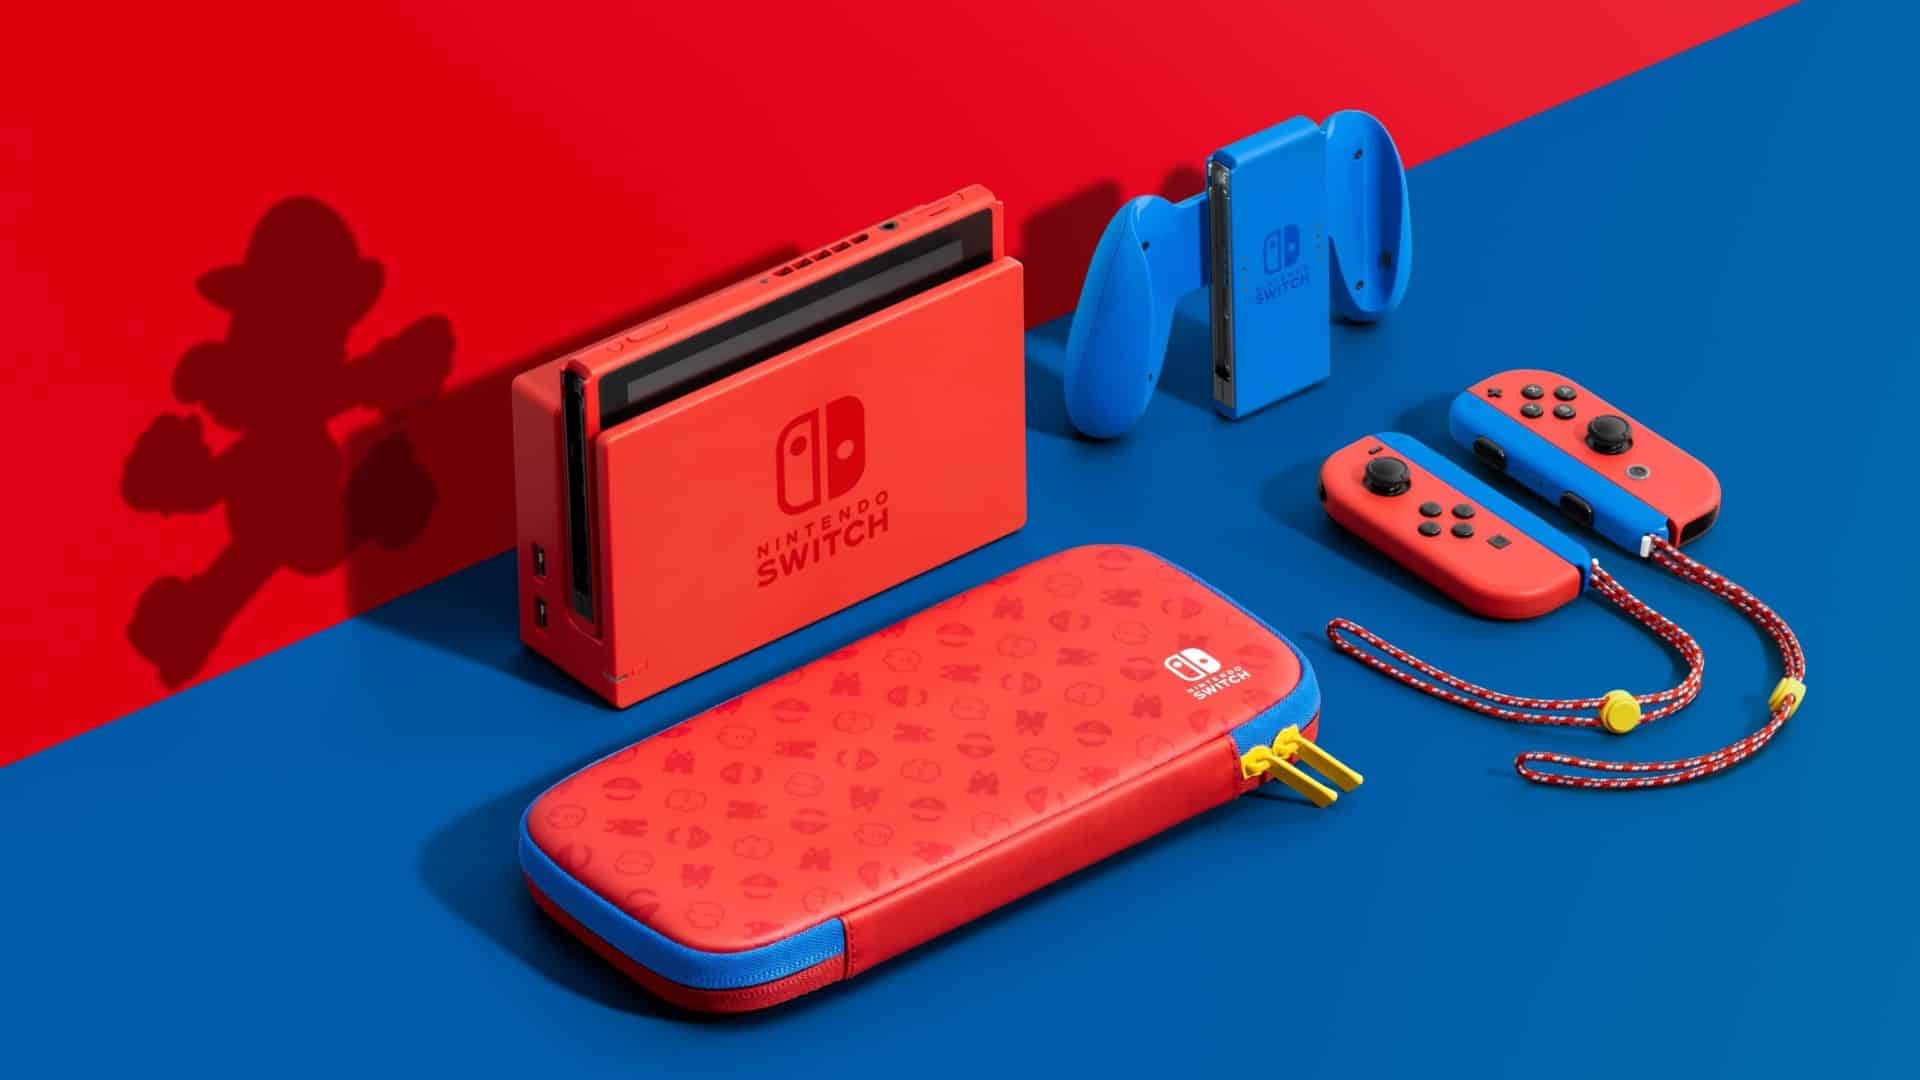 Mario Red & Blue Edition Nintendo Switch Pro 4K 720p 7 inch screen report release date timing is crucial